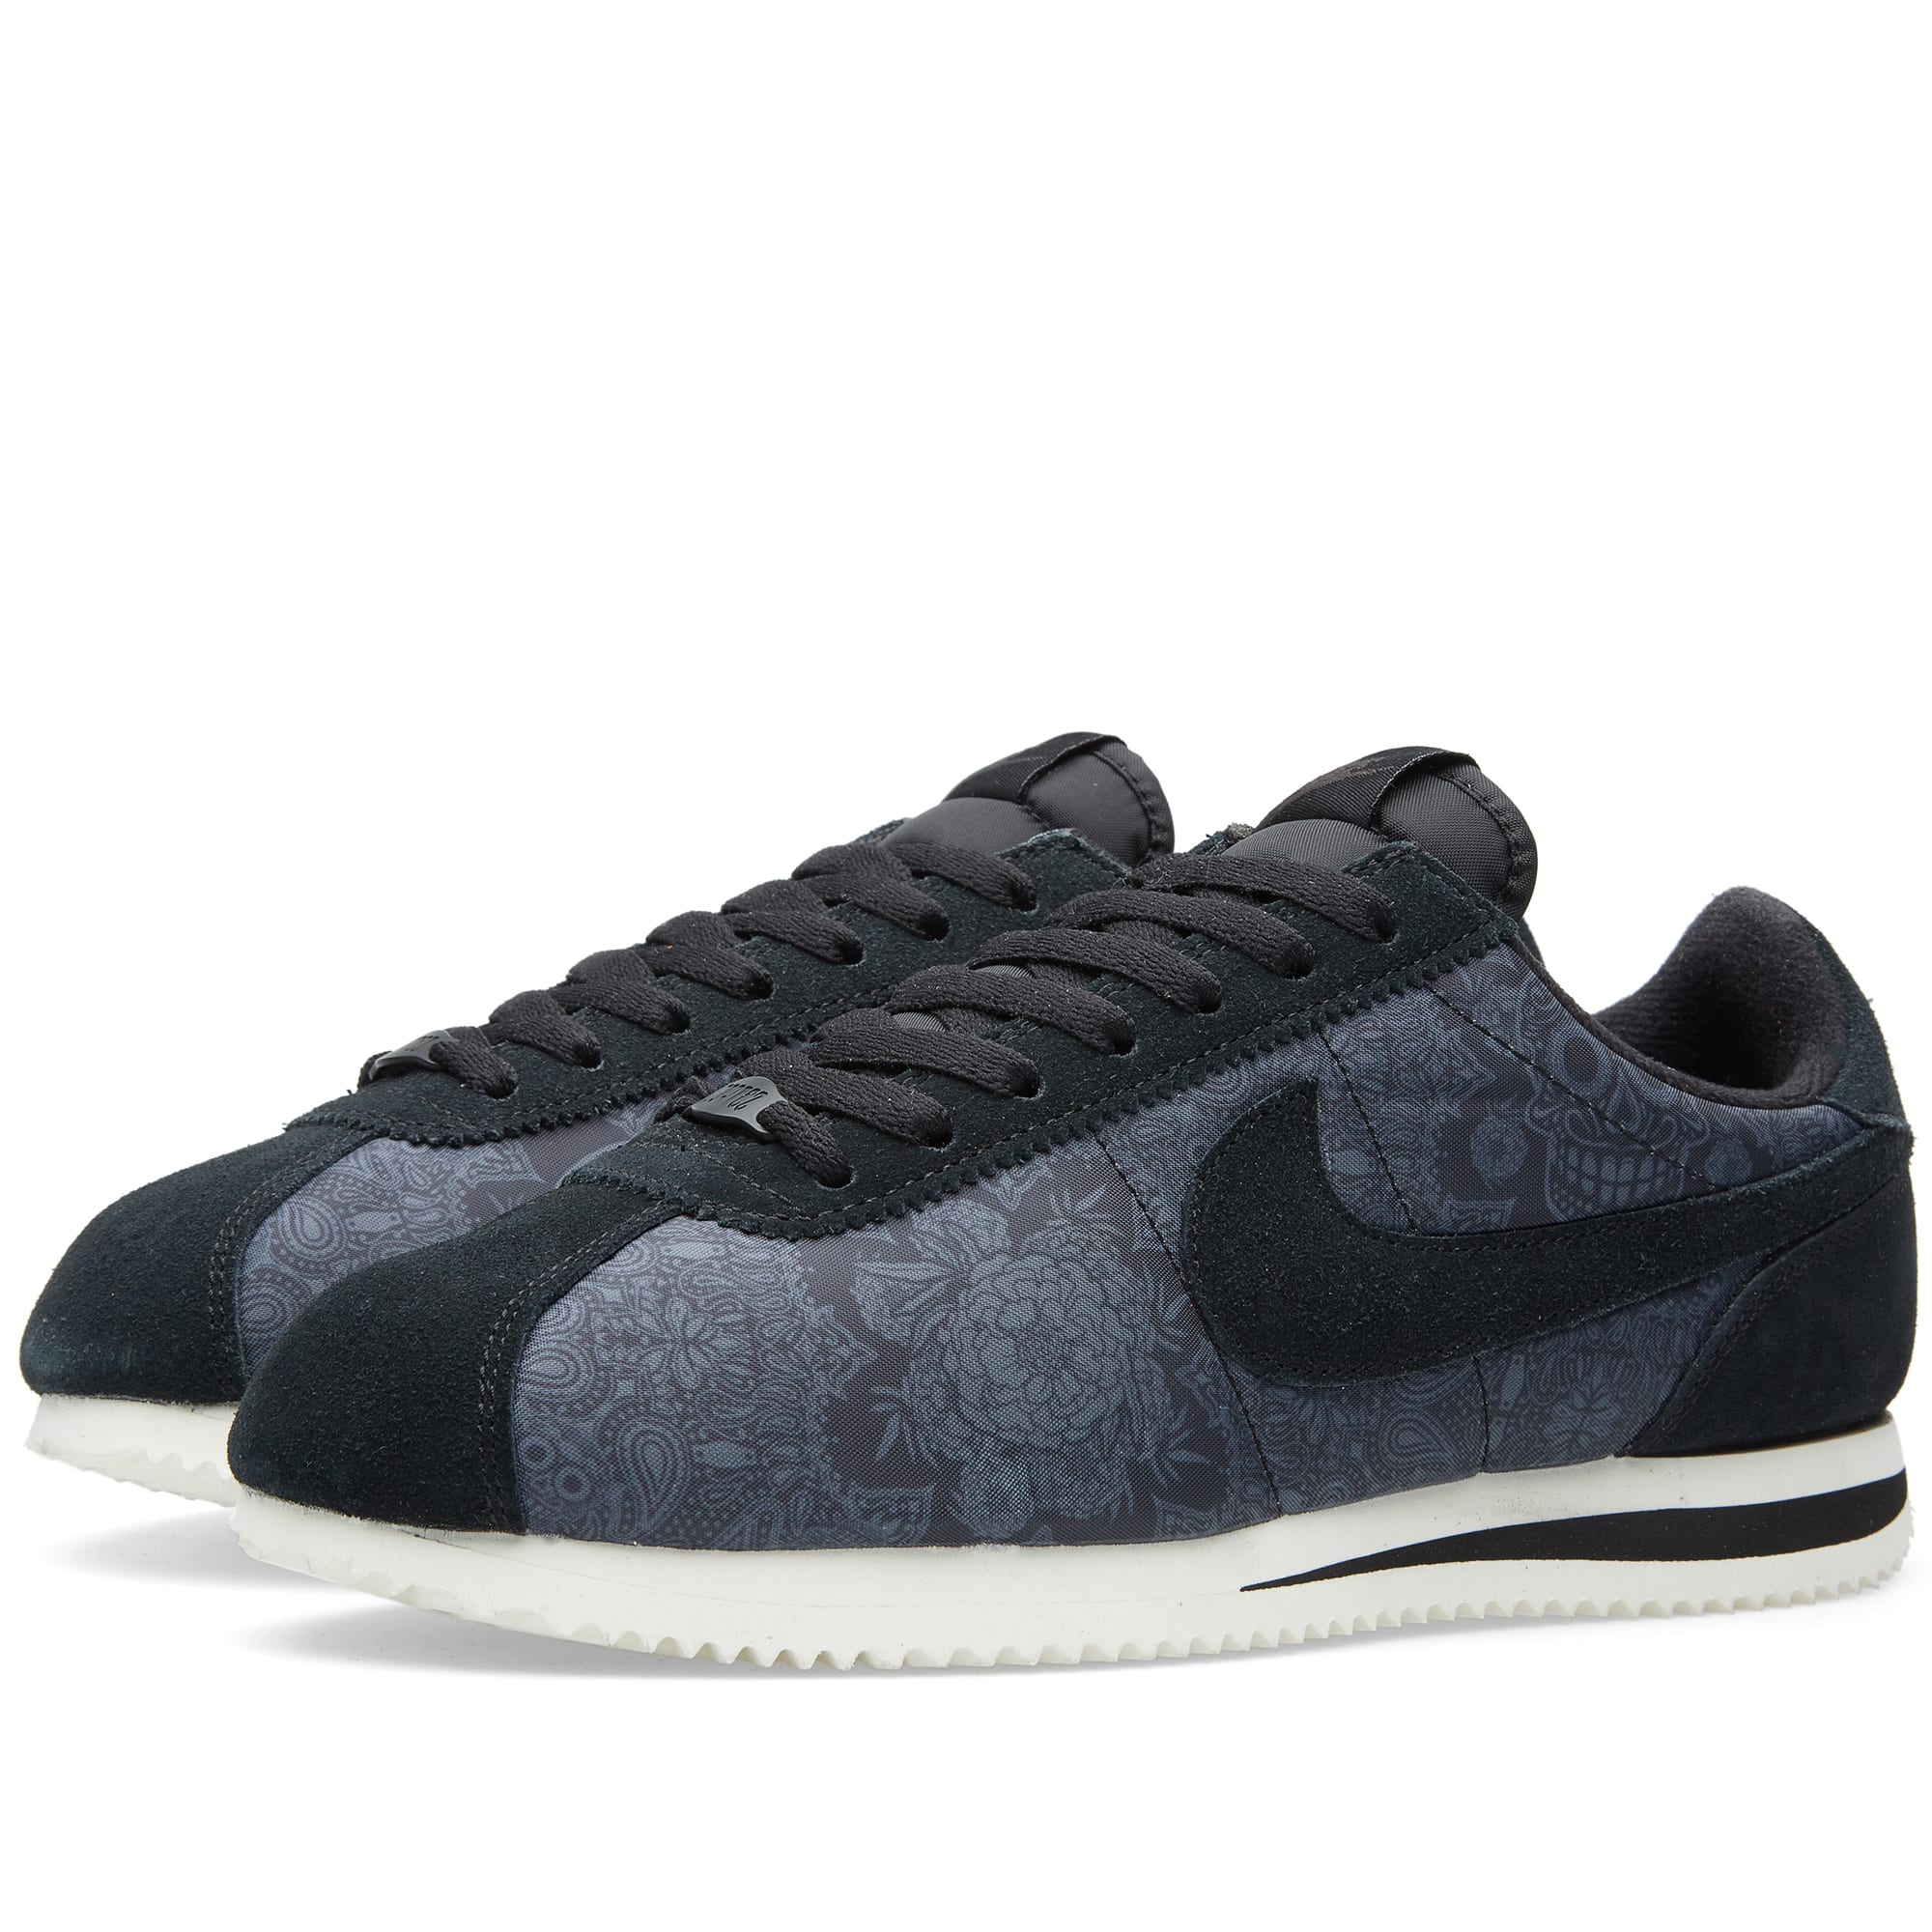 new product bb291 e1dc4 Nike Cortez Basic Premium QS 'Day of the Dead'